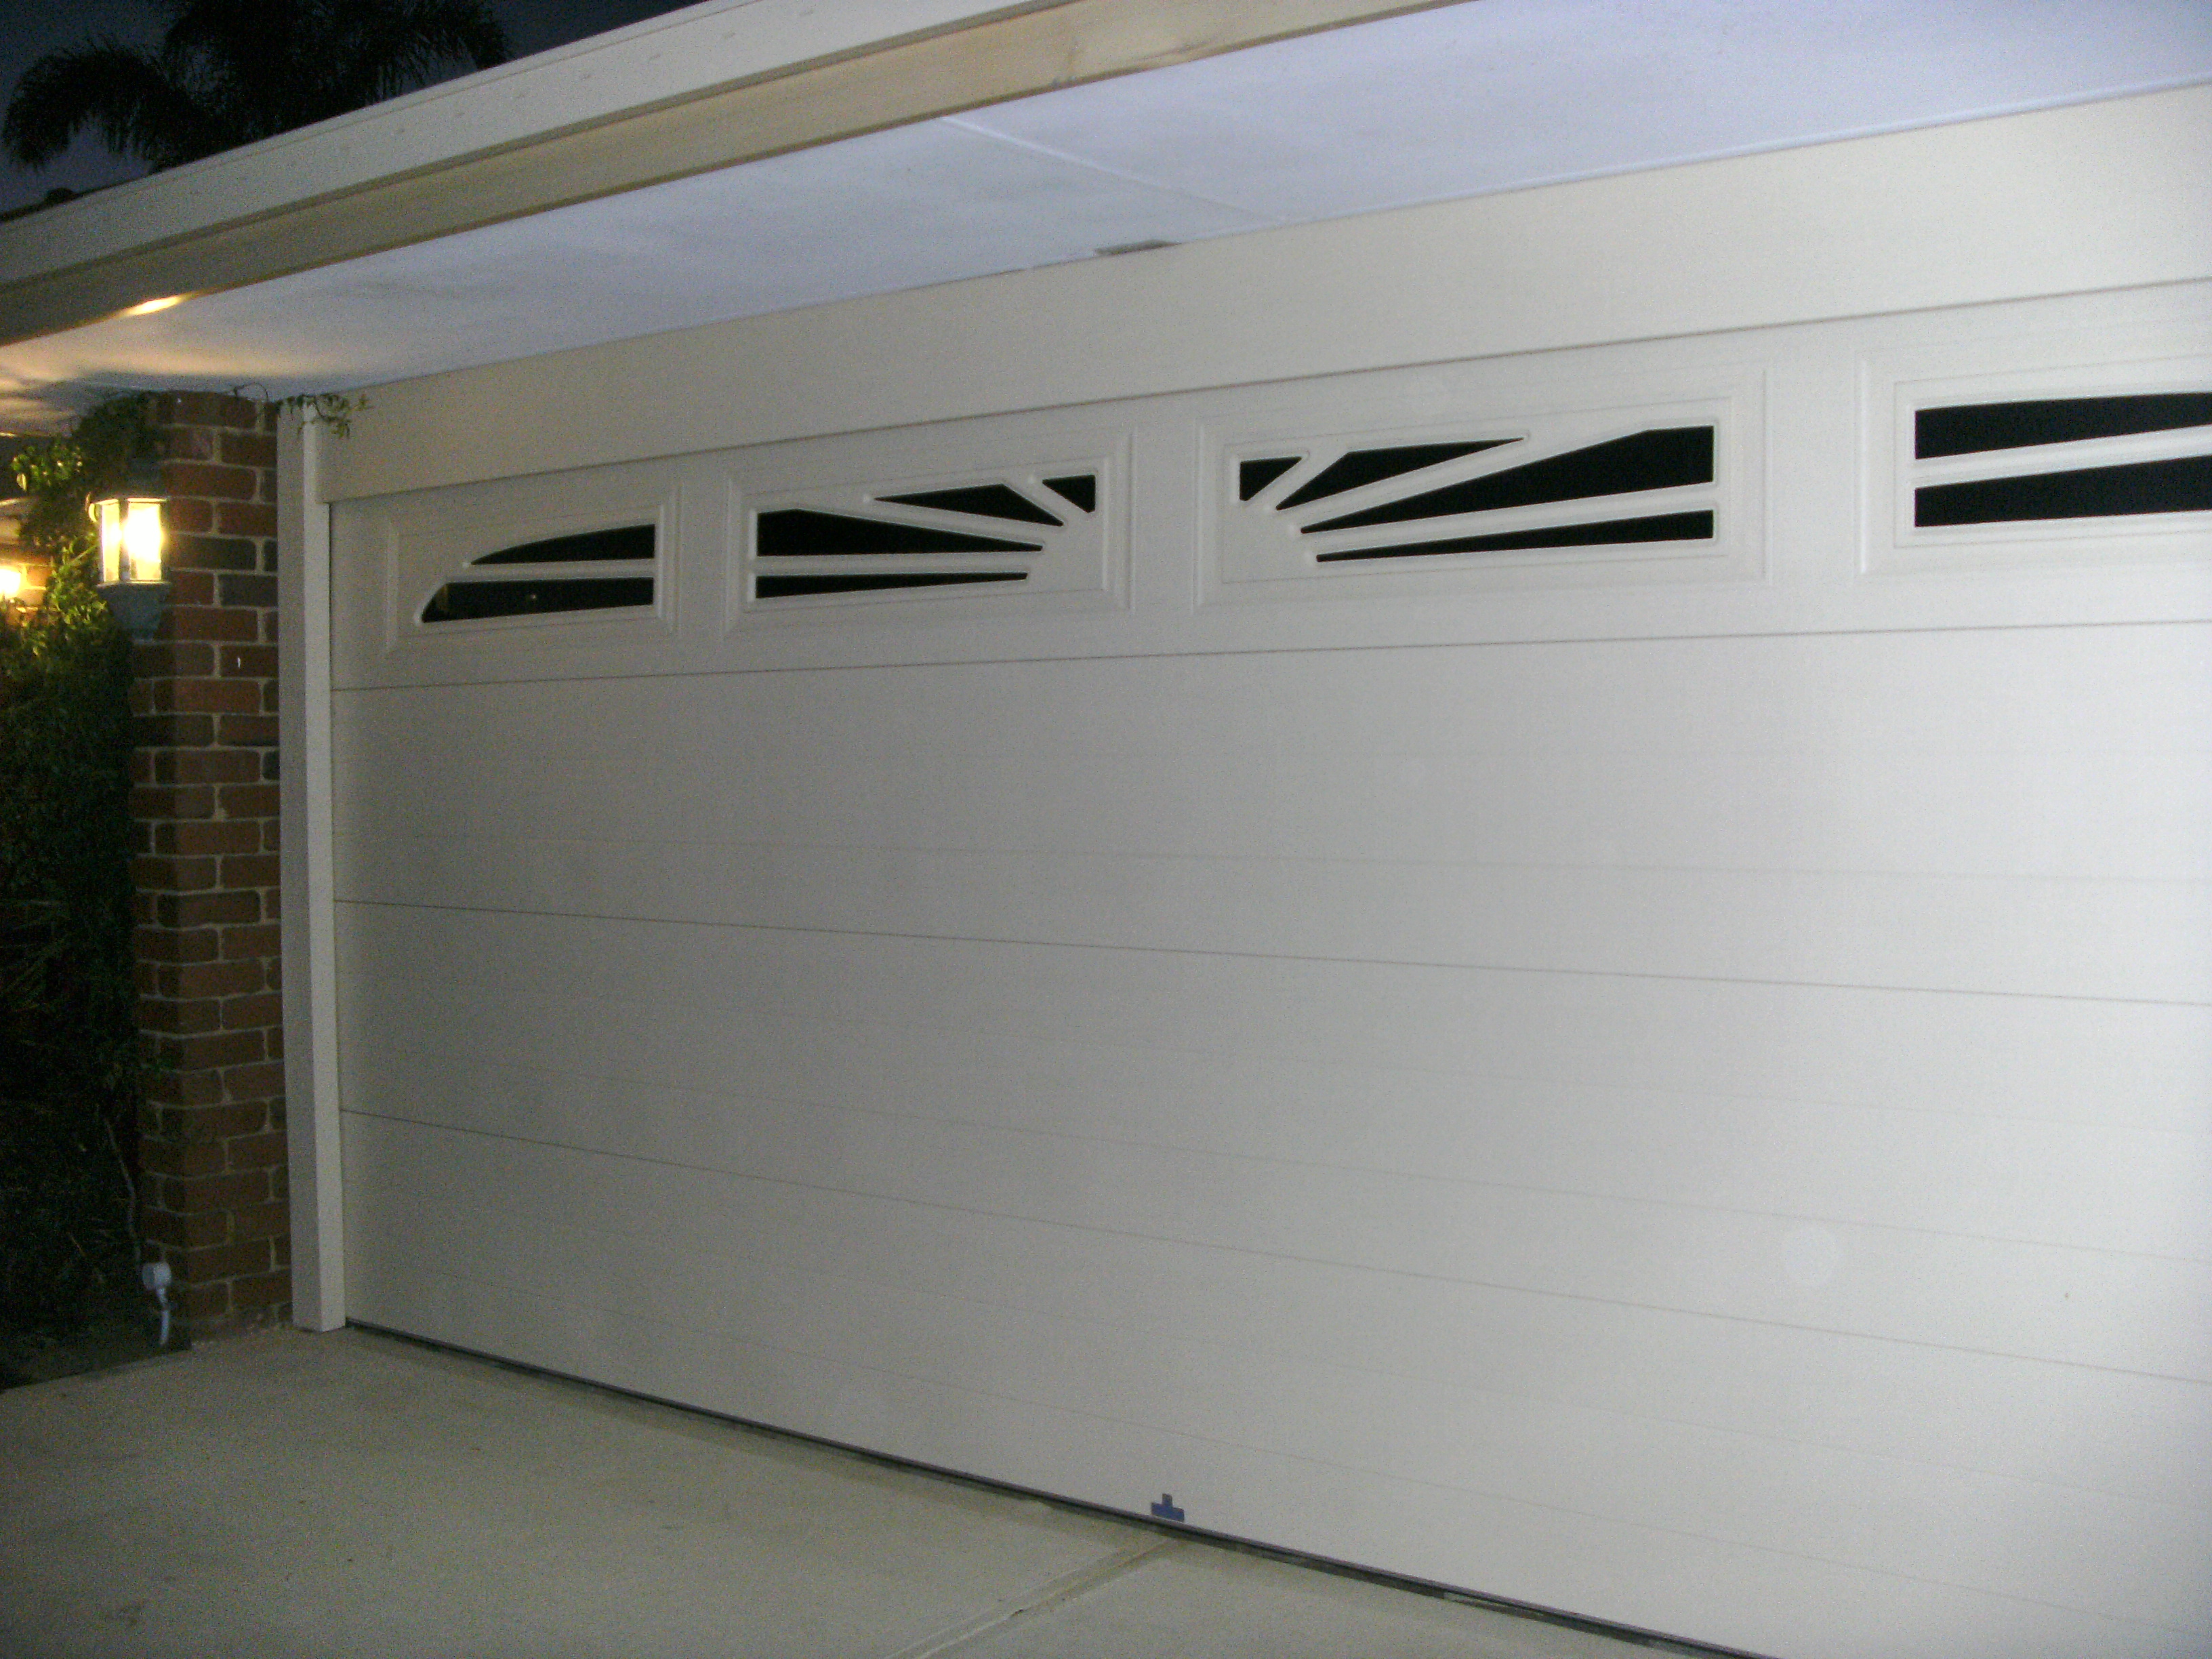 garage door pics 072 - Copy.JPG